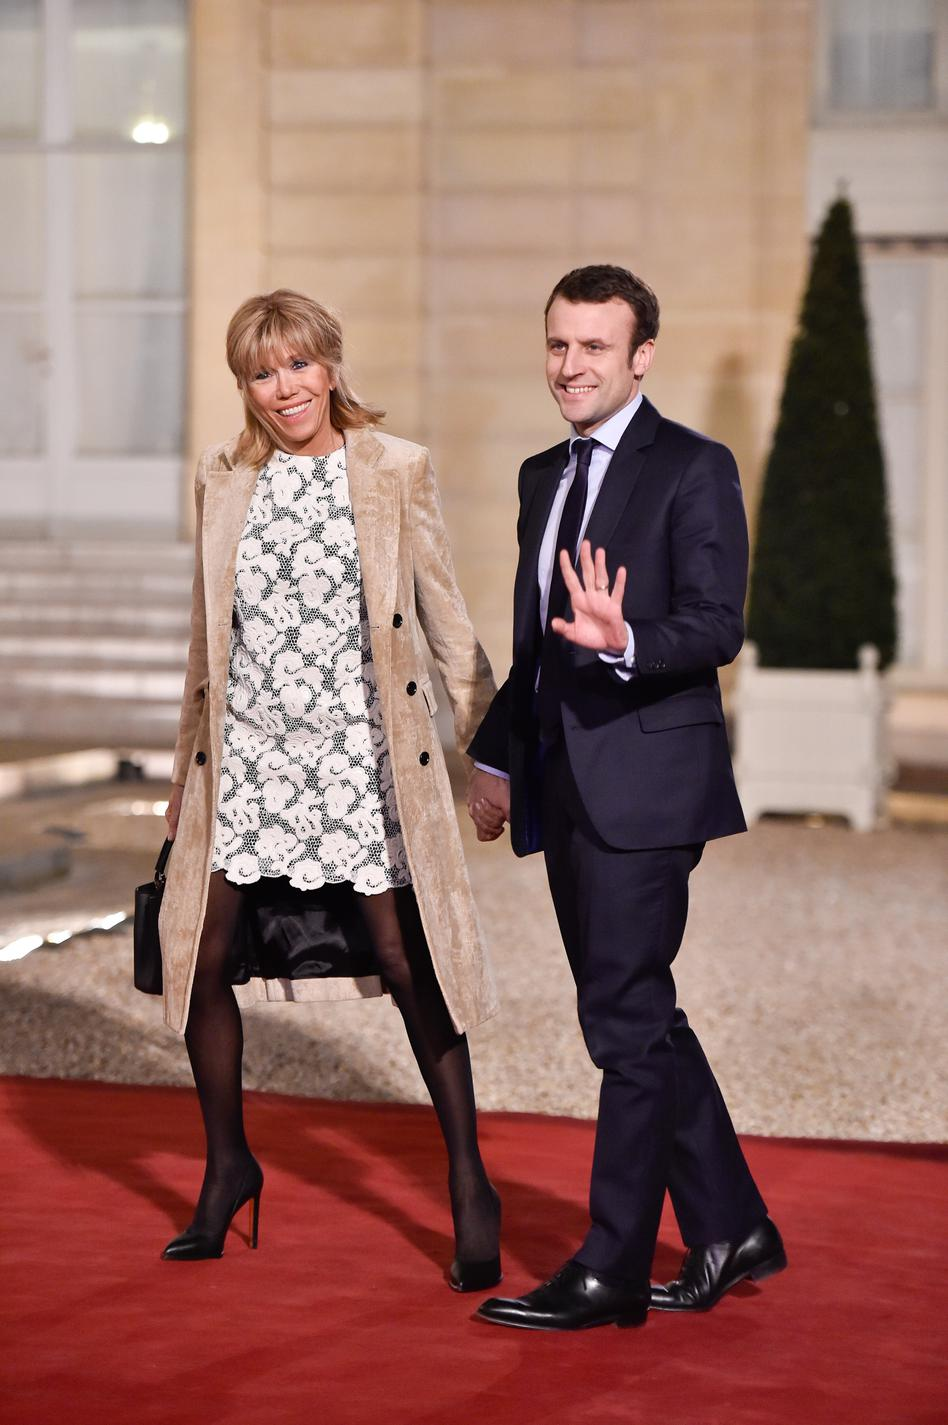 who is brigitte trogneux 5 things to know about france s new first lady trace. Black Bedroom Furniture Sets. Home Design Ideas